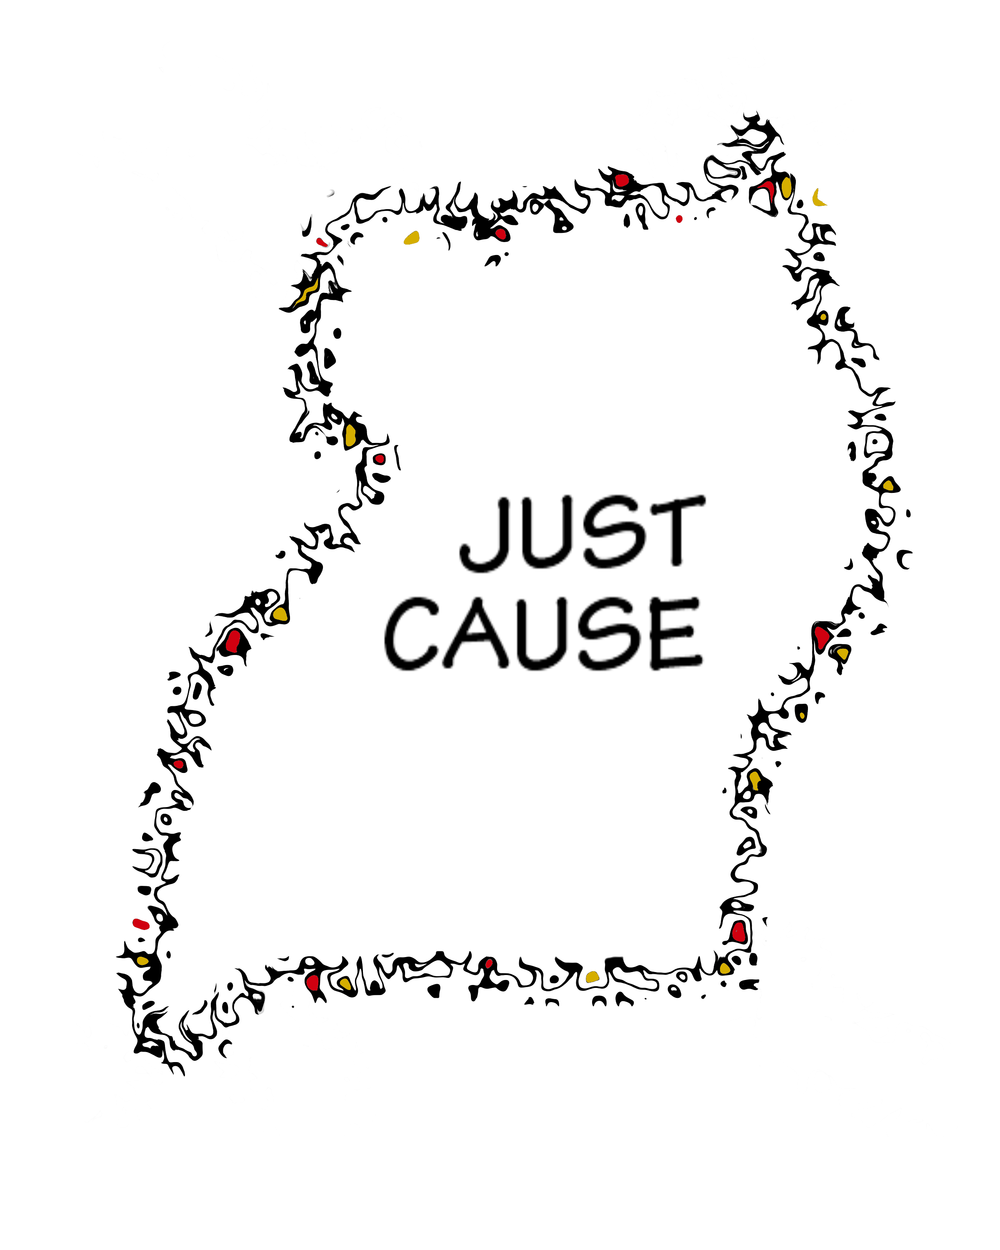 JUST-CAUSE-LOGO.png